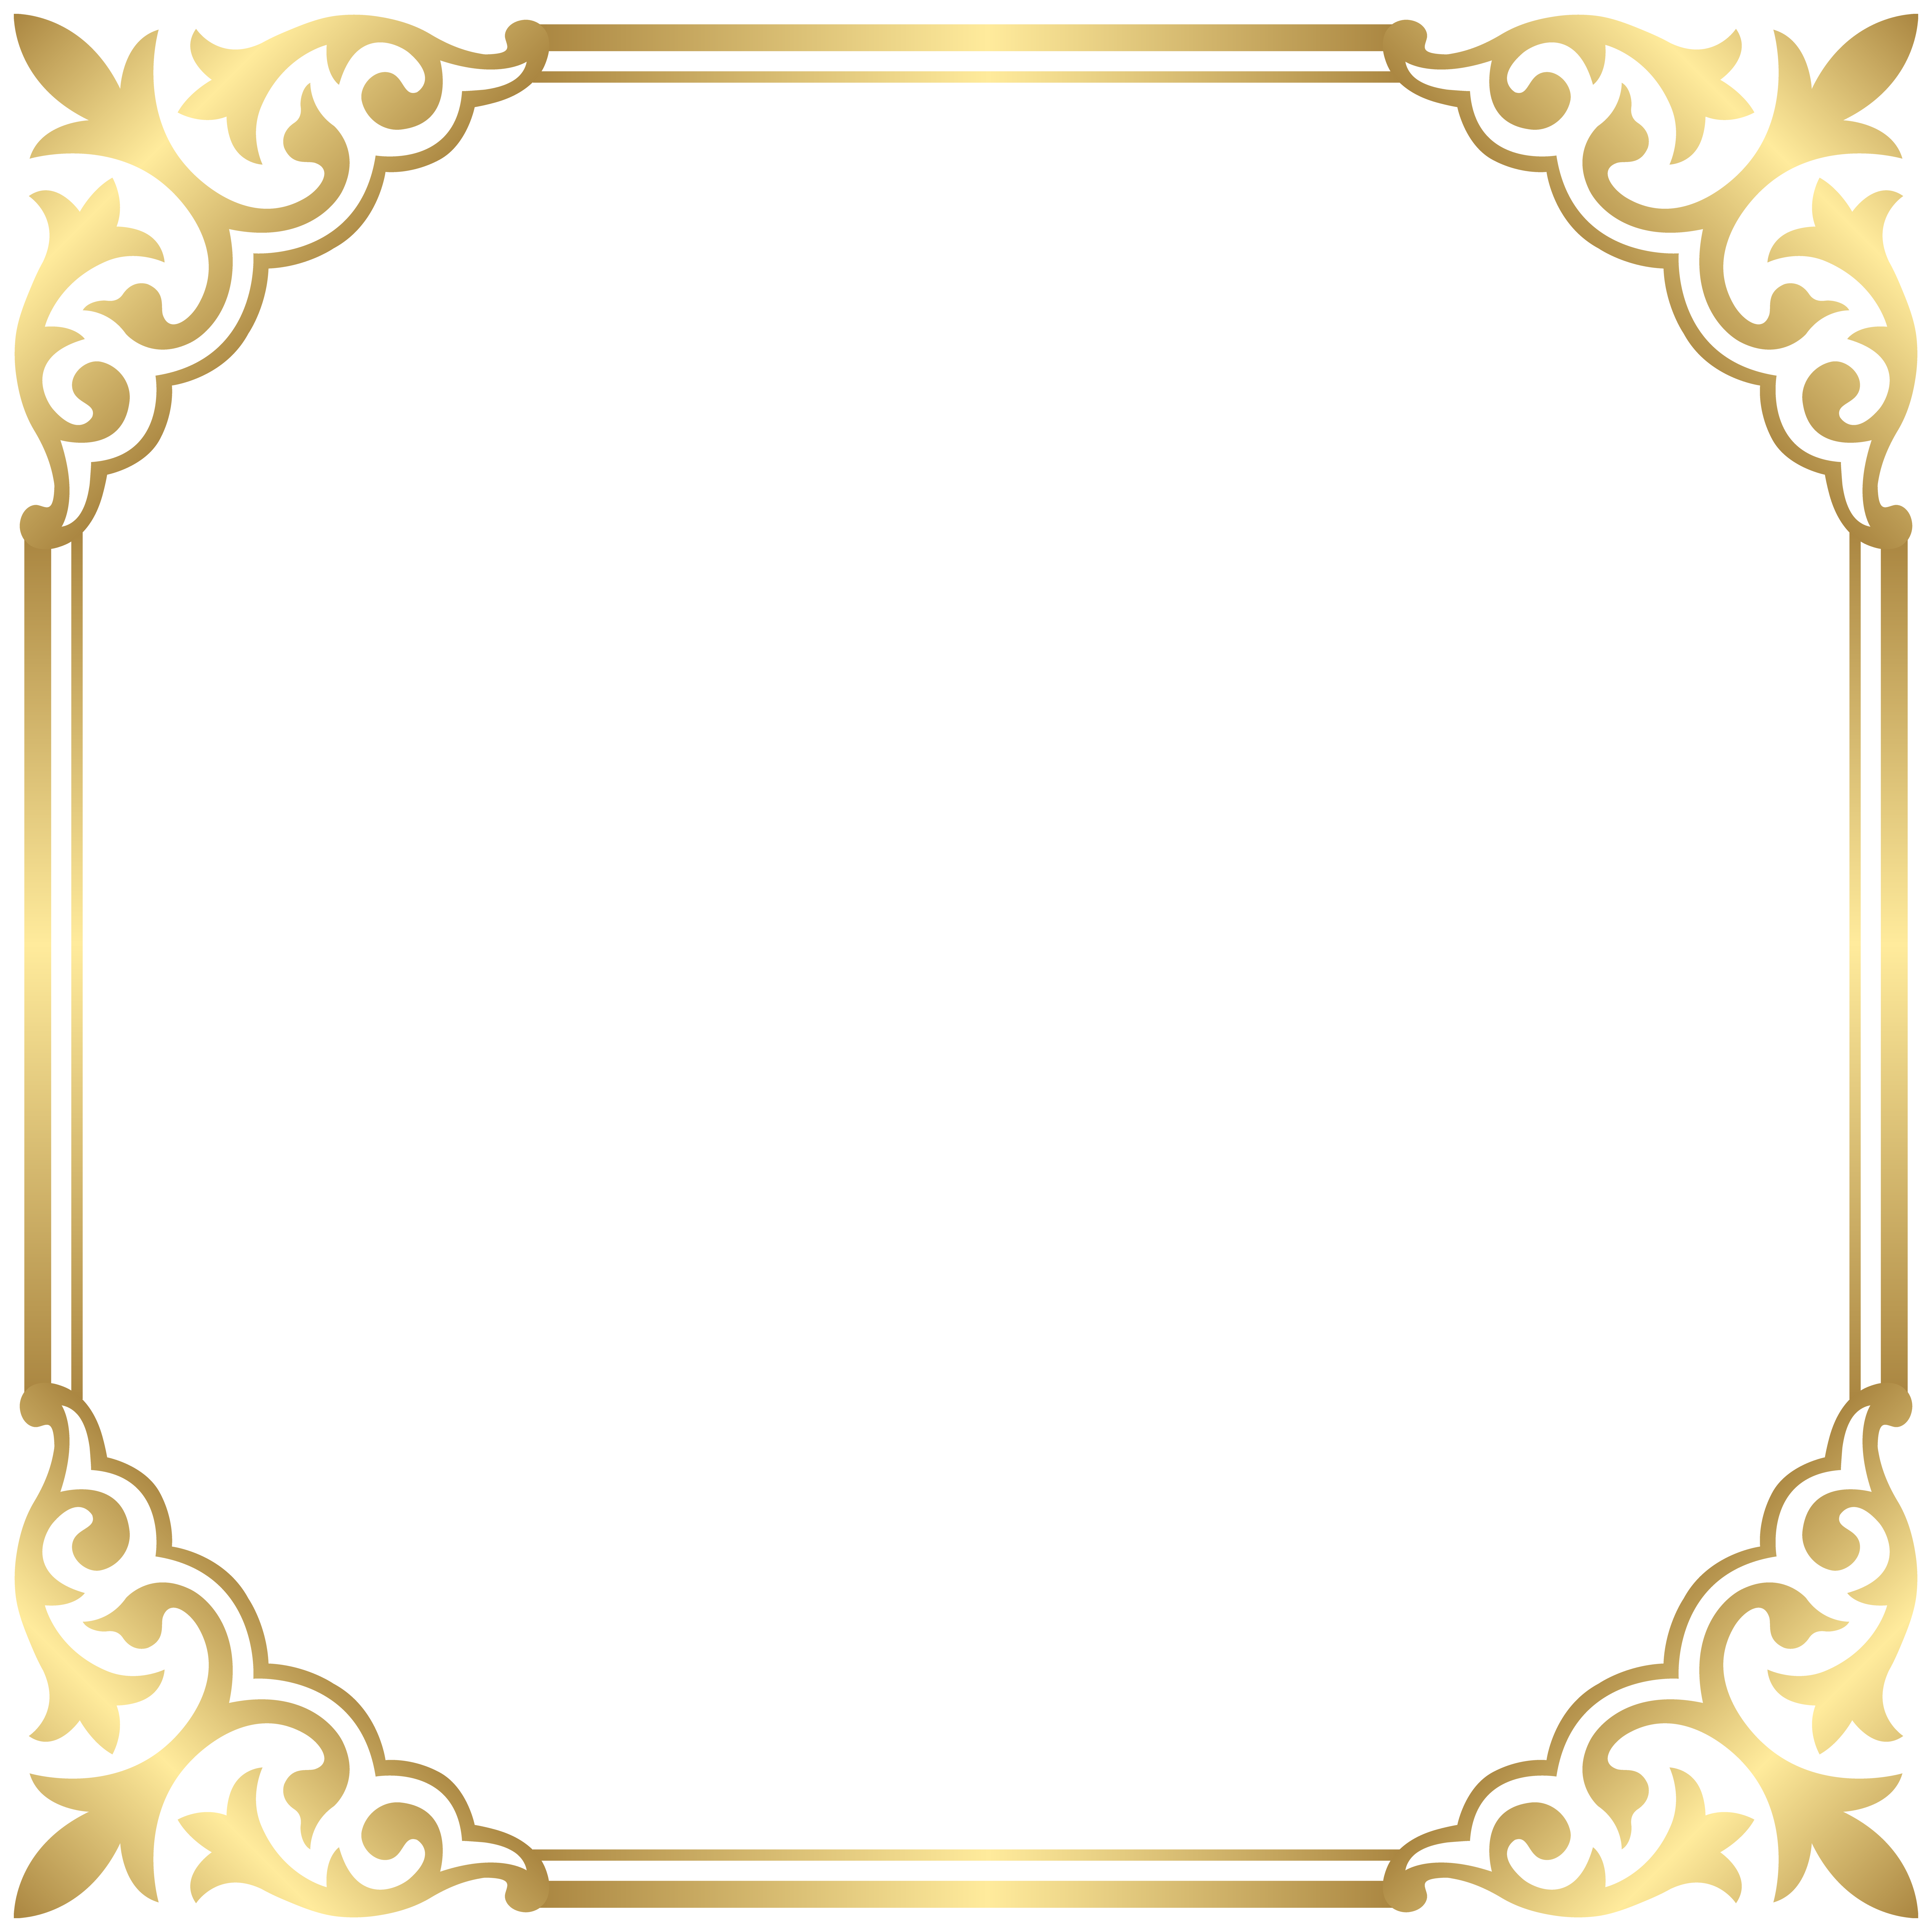 Fancy that boutique louenhide. Square clipart square frame